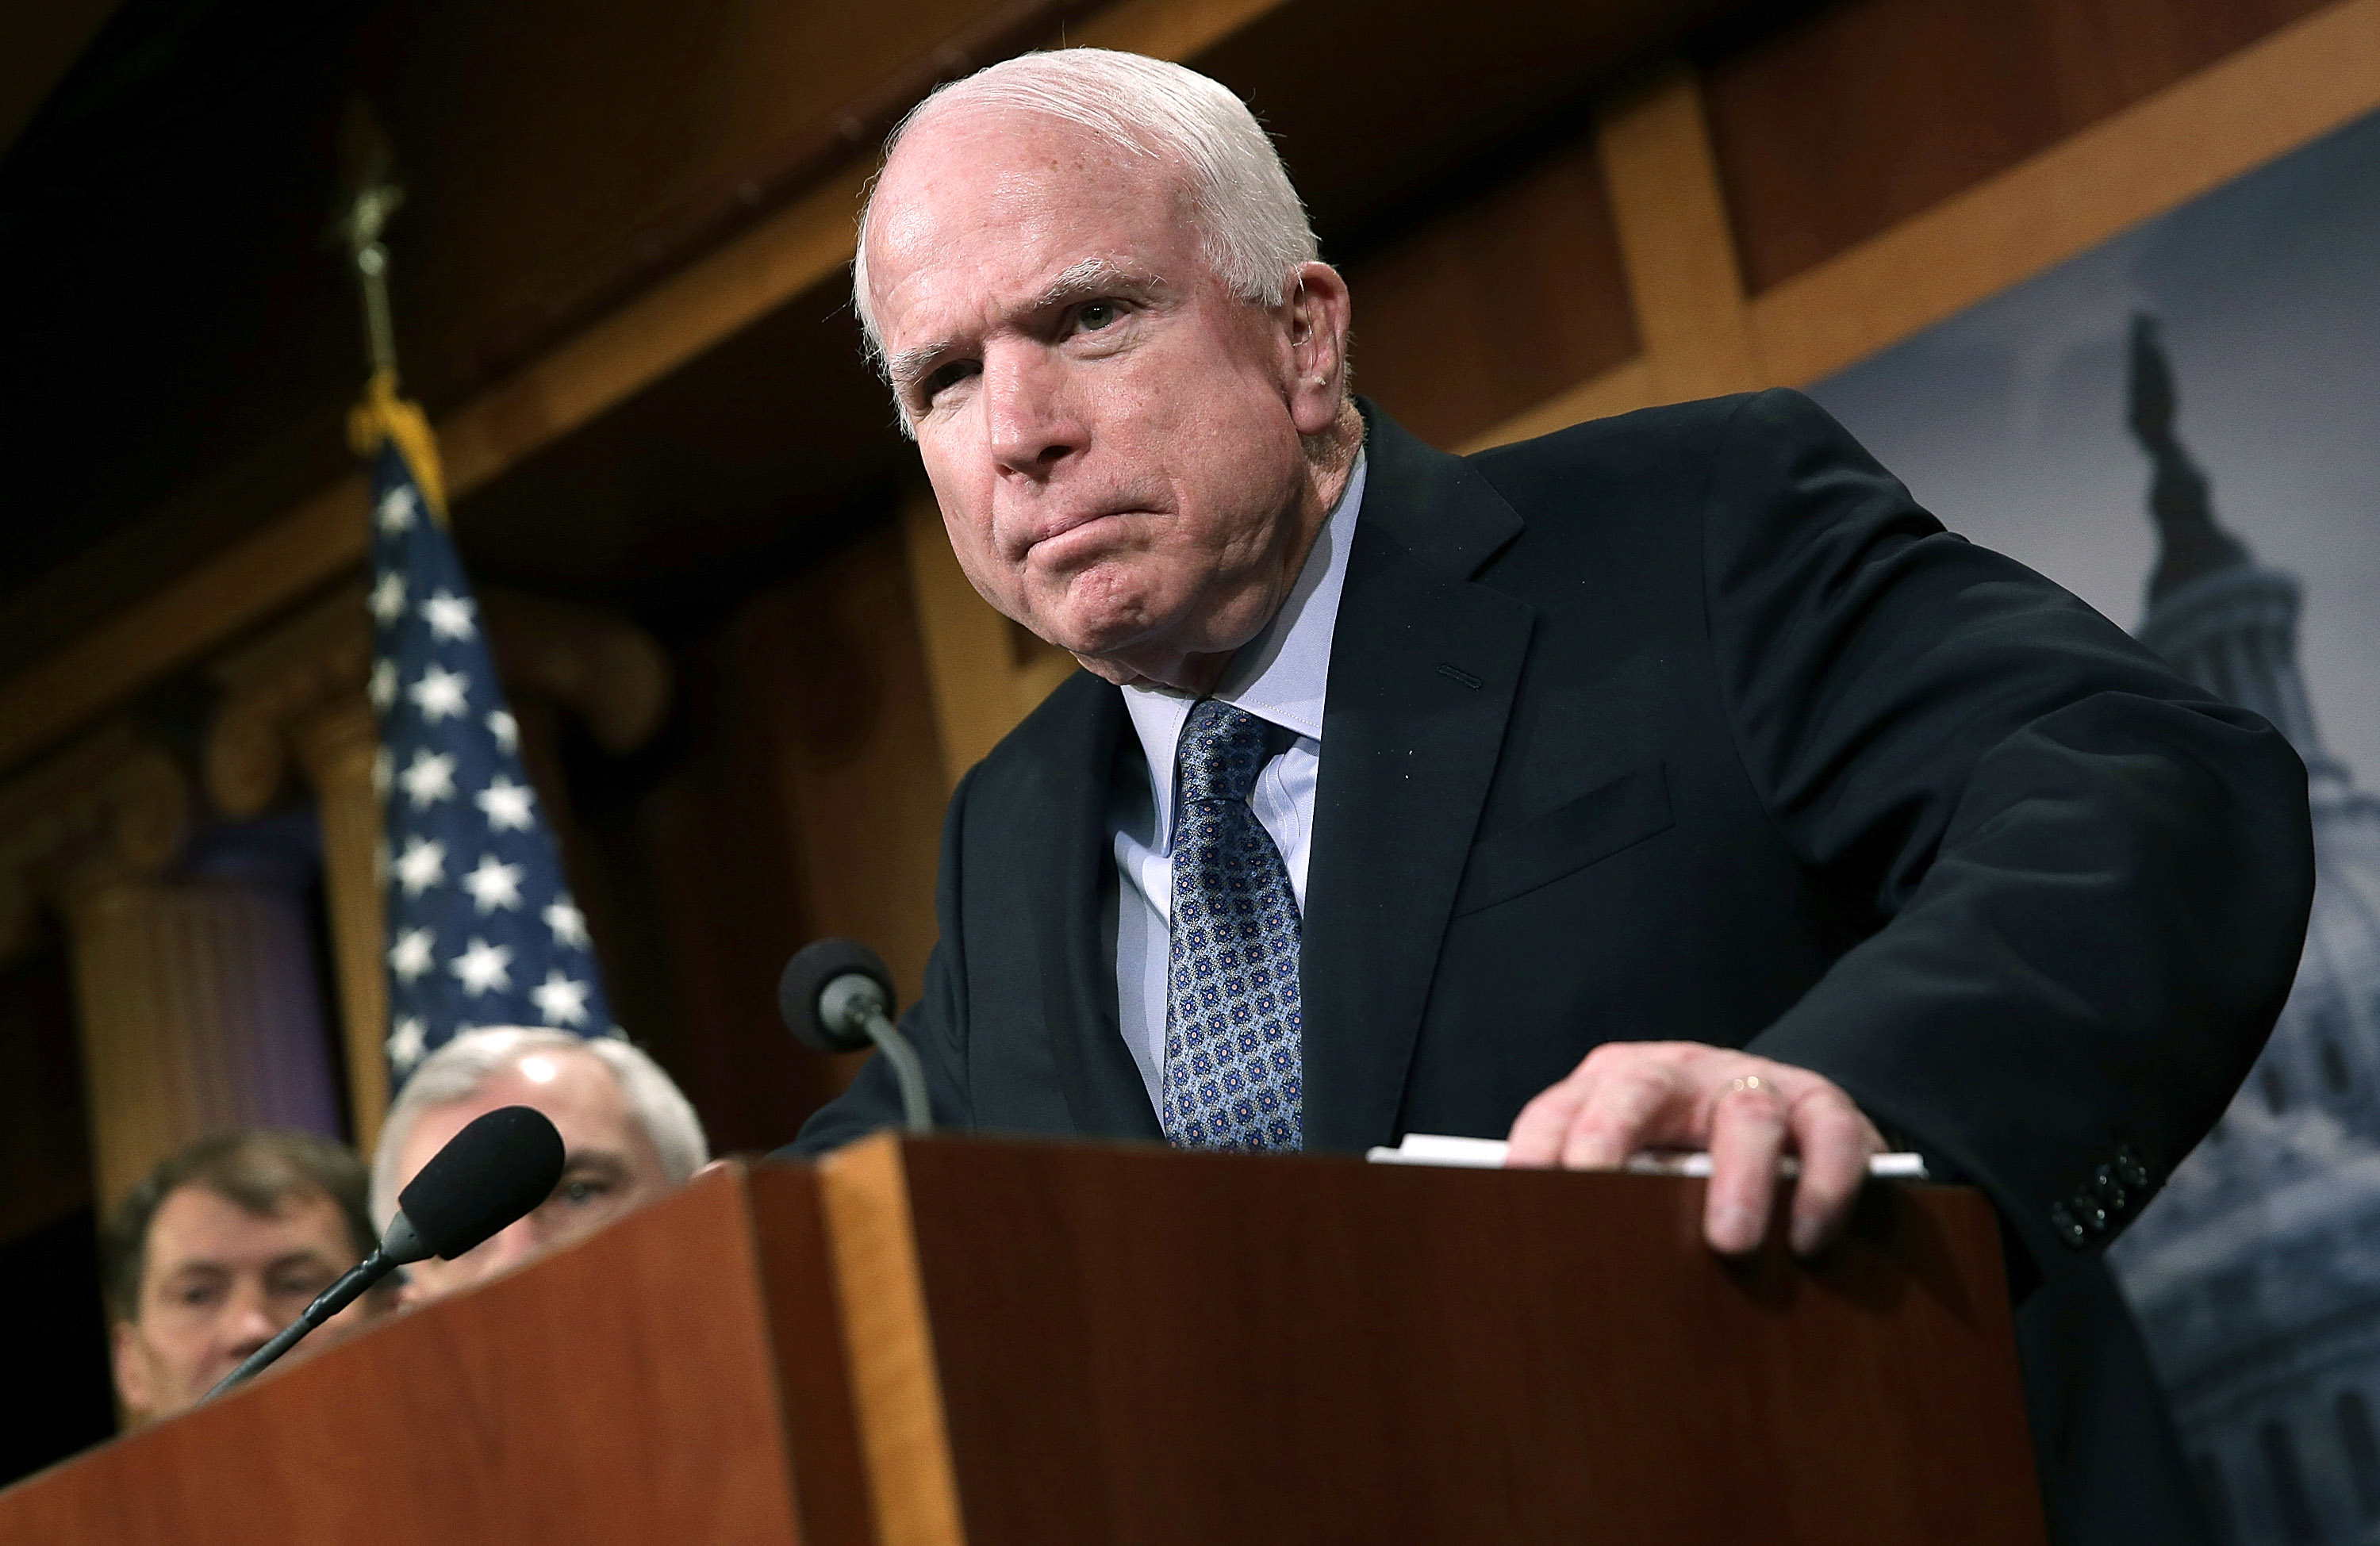 Sen. John McCain (R-AZ) speaks during a press conference at the U.S. Capitol February 5, 2015 in Washington, DC.